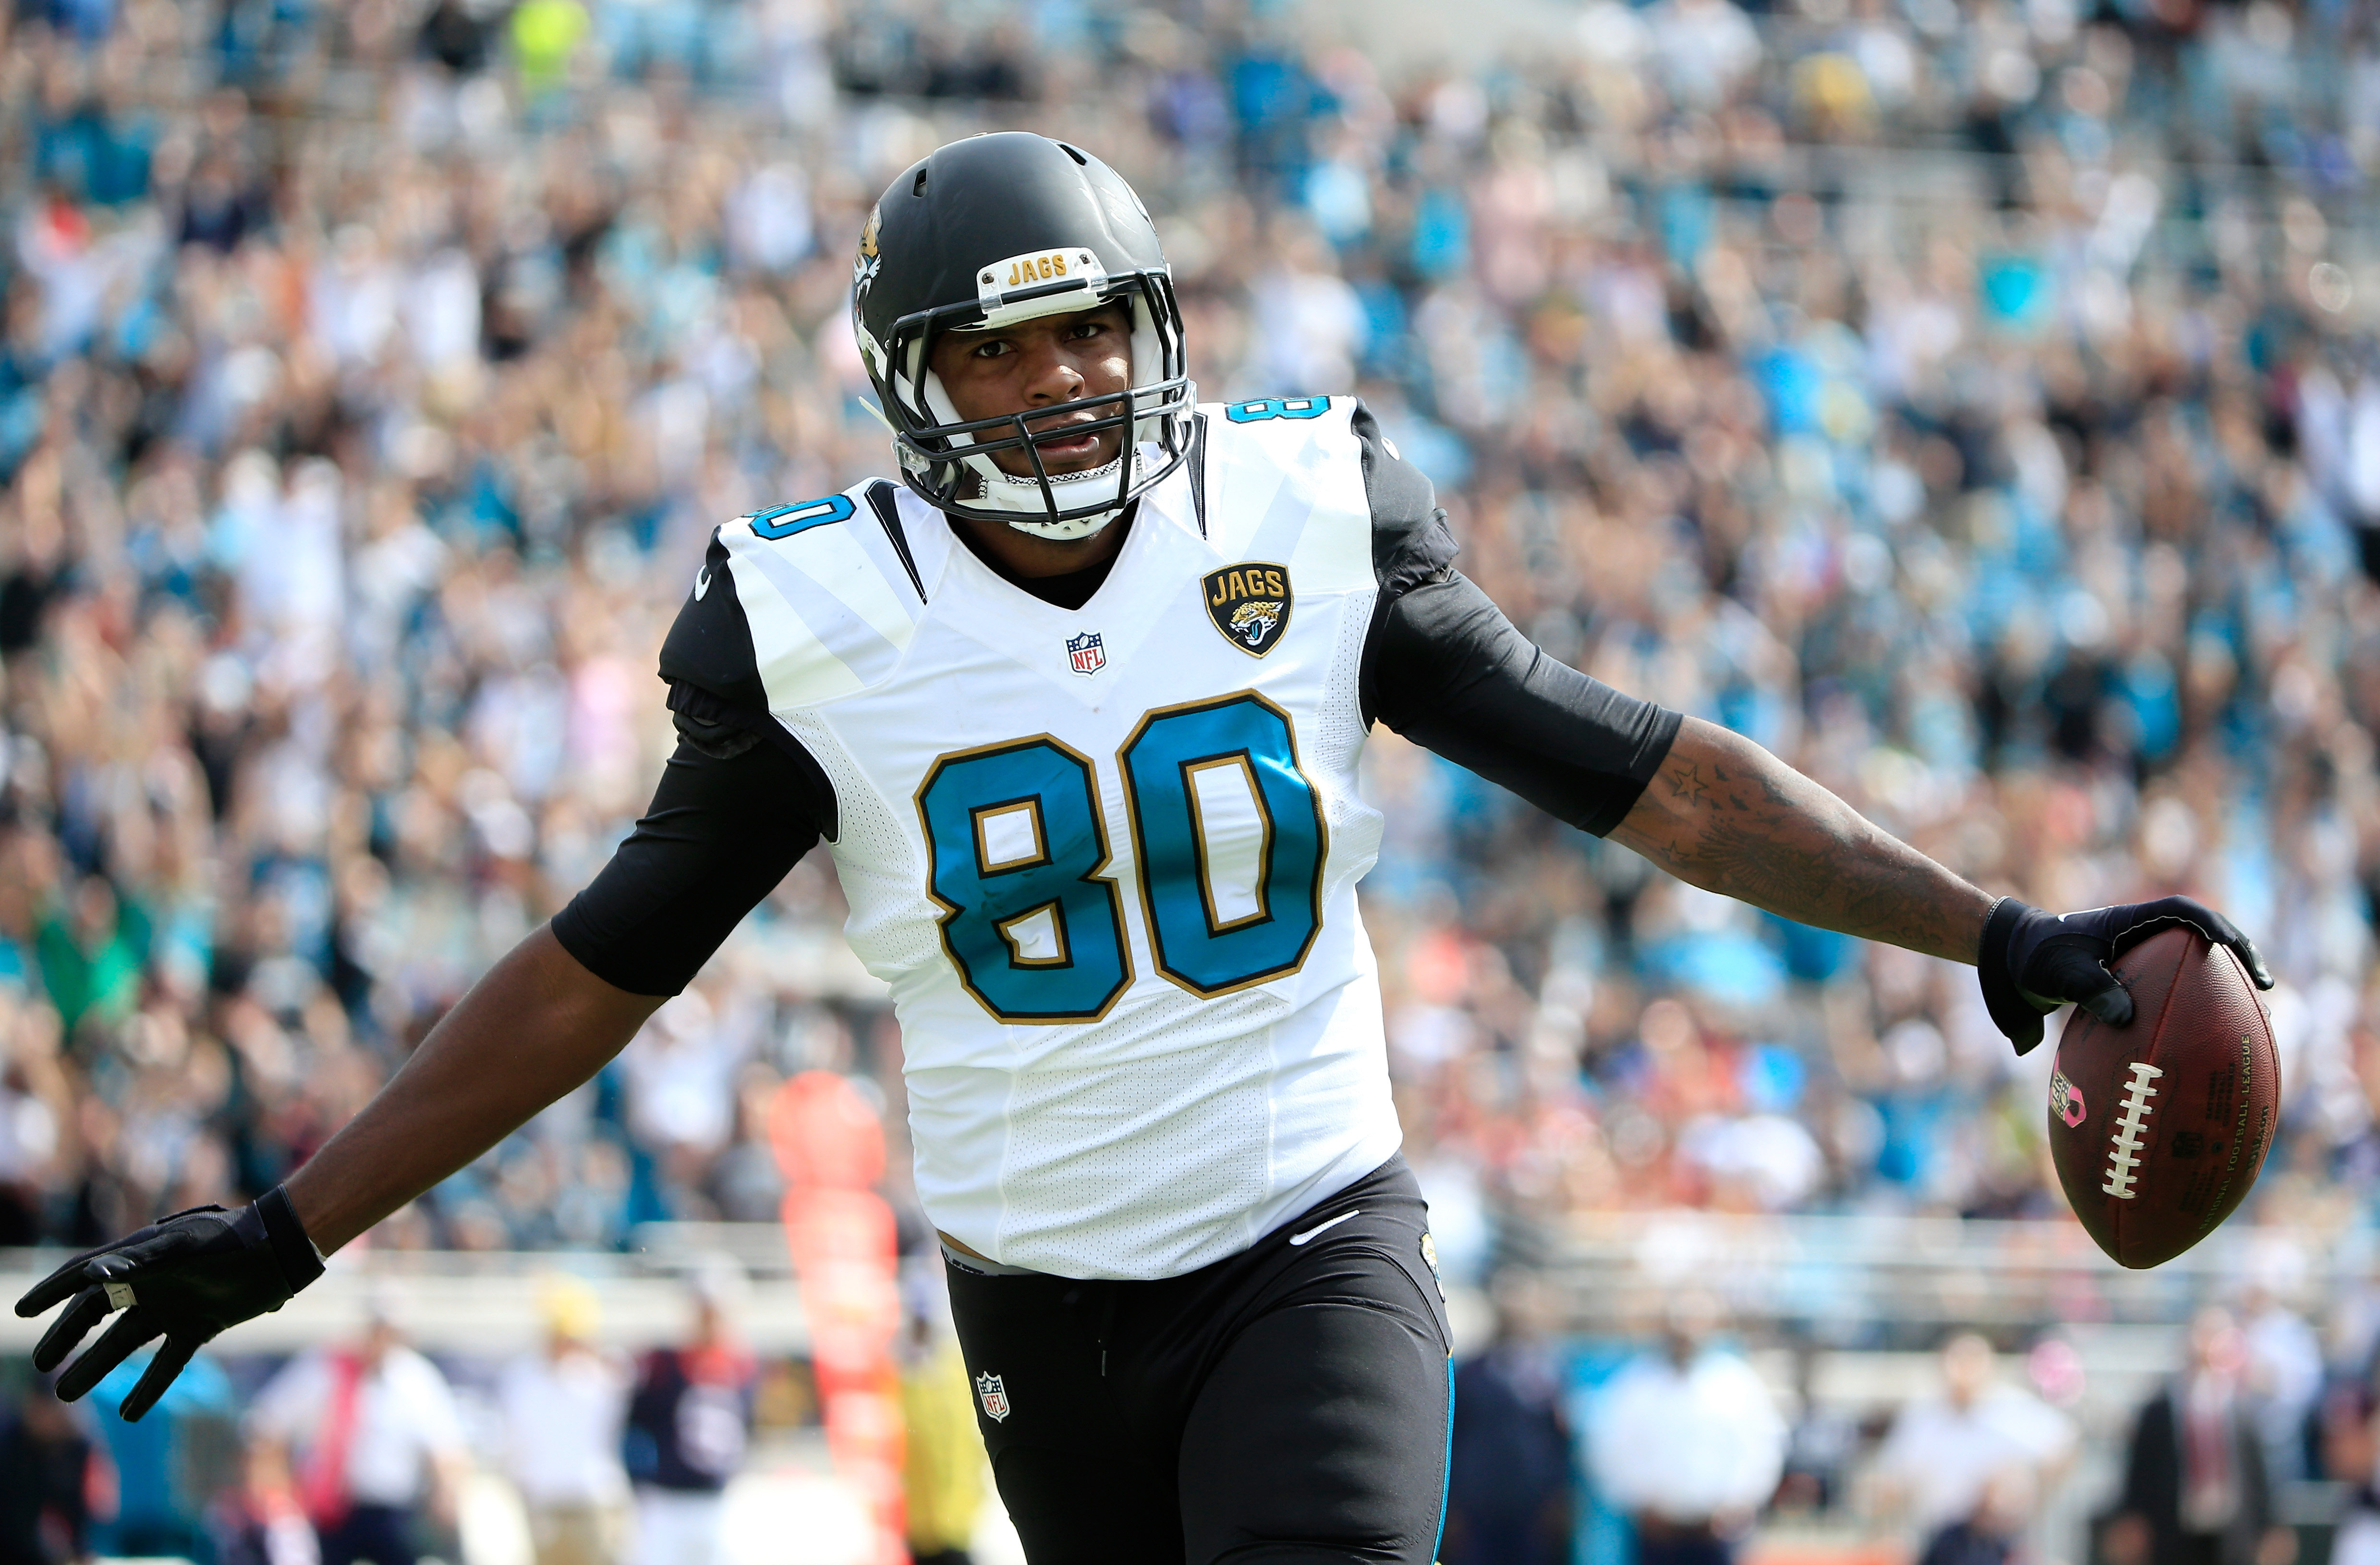 Julius Thomas, who missed the start of the season with a finger injury, caught his first touchdown pass as a Jaguar last week. (Getty)